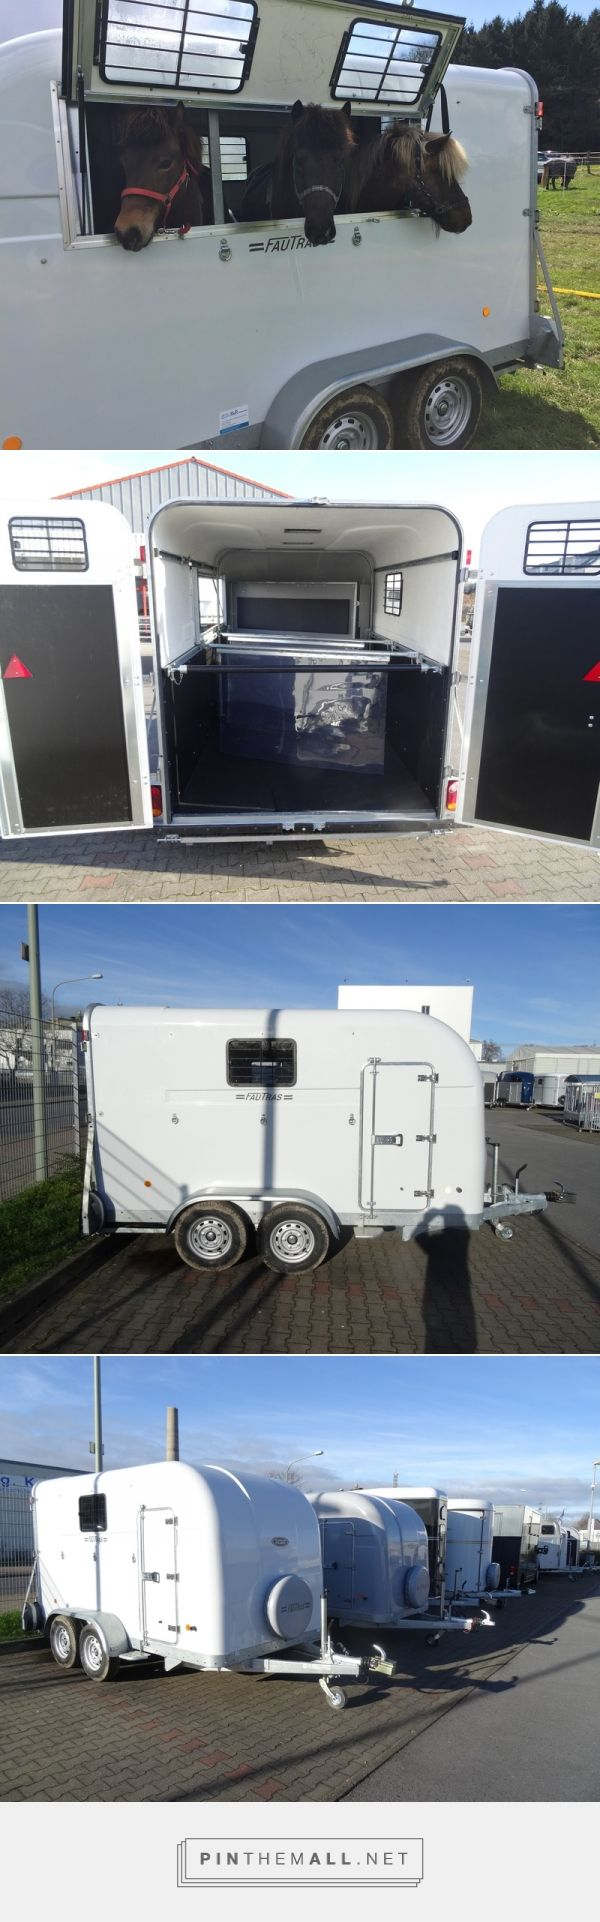 Fautras trailer adapted for transporting smaller ponies. - created via https://pinthemall.net